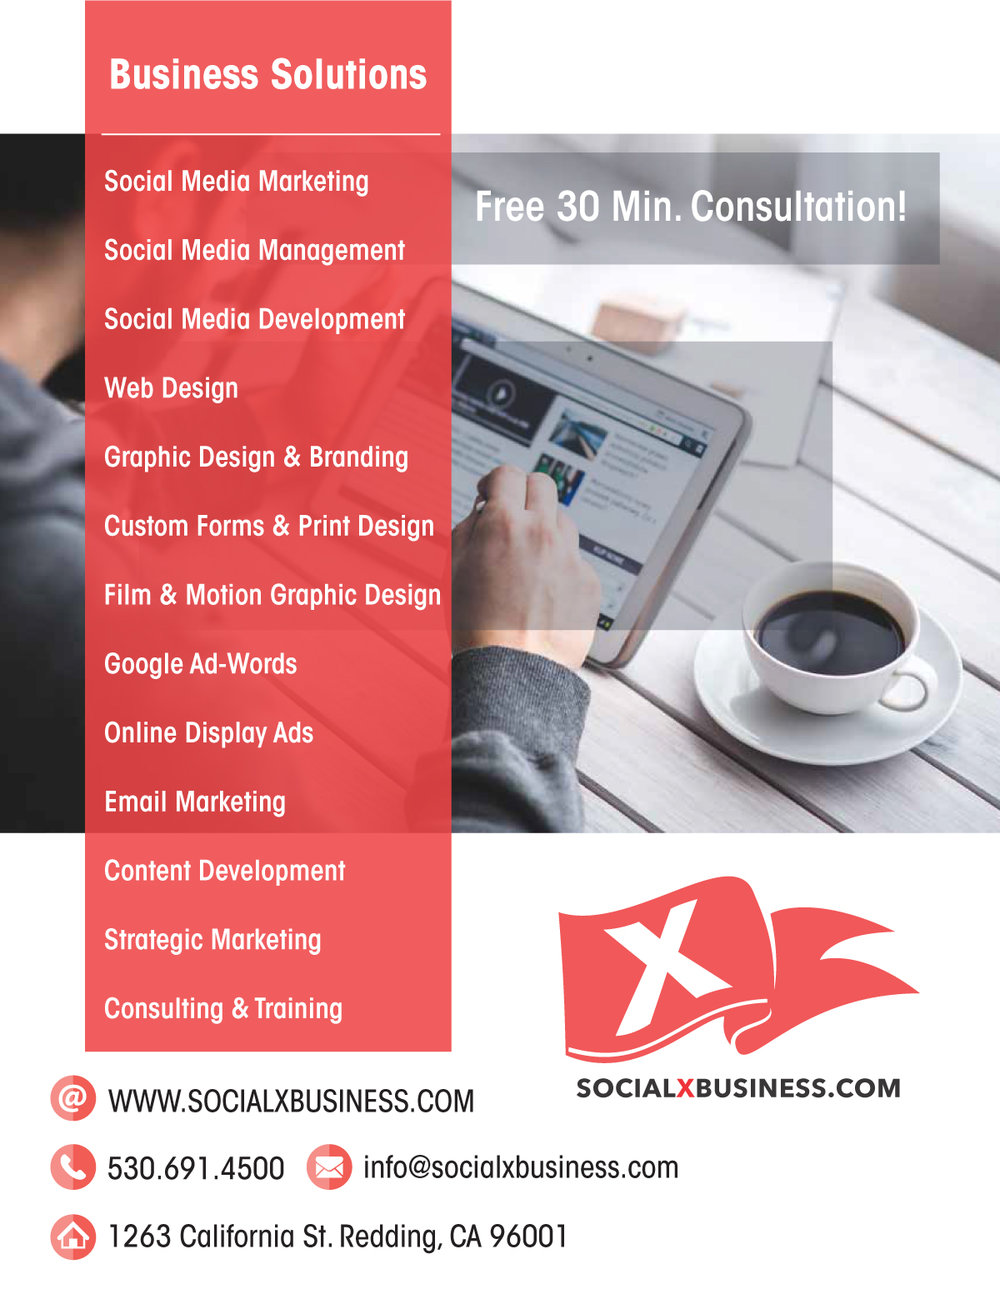 SocialxBusiness Digital Marketing Services.jpg